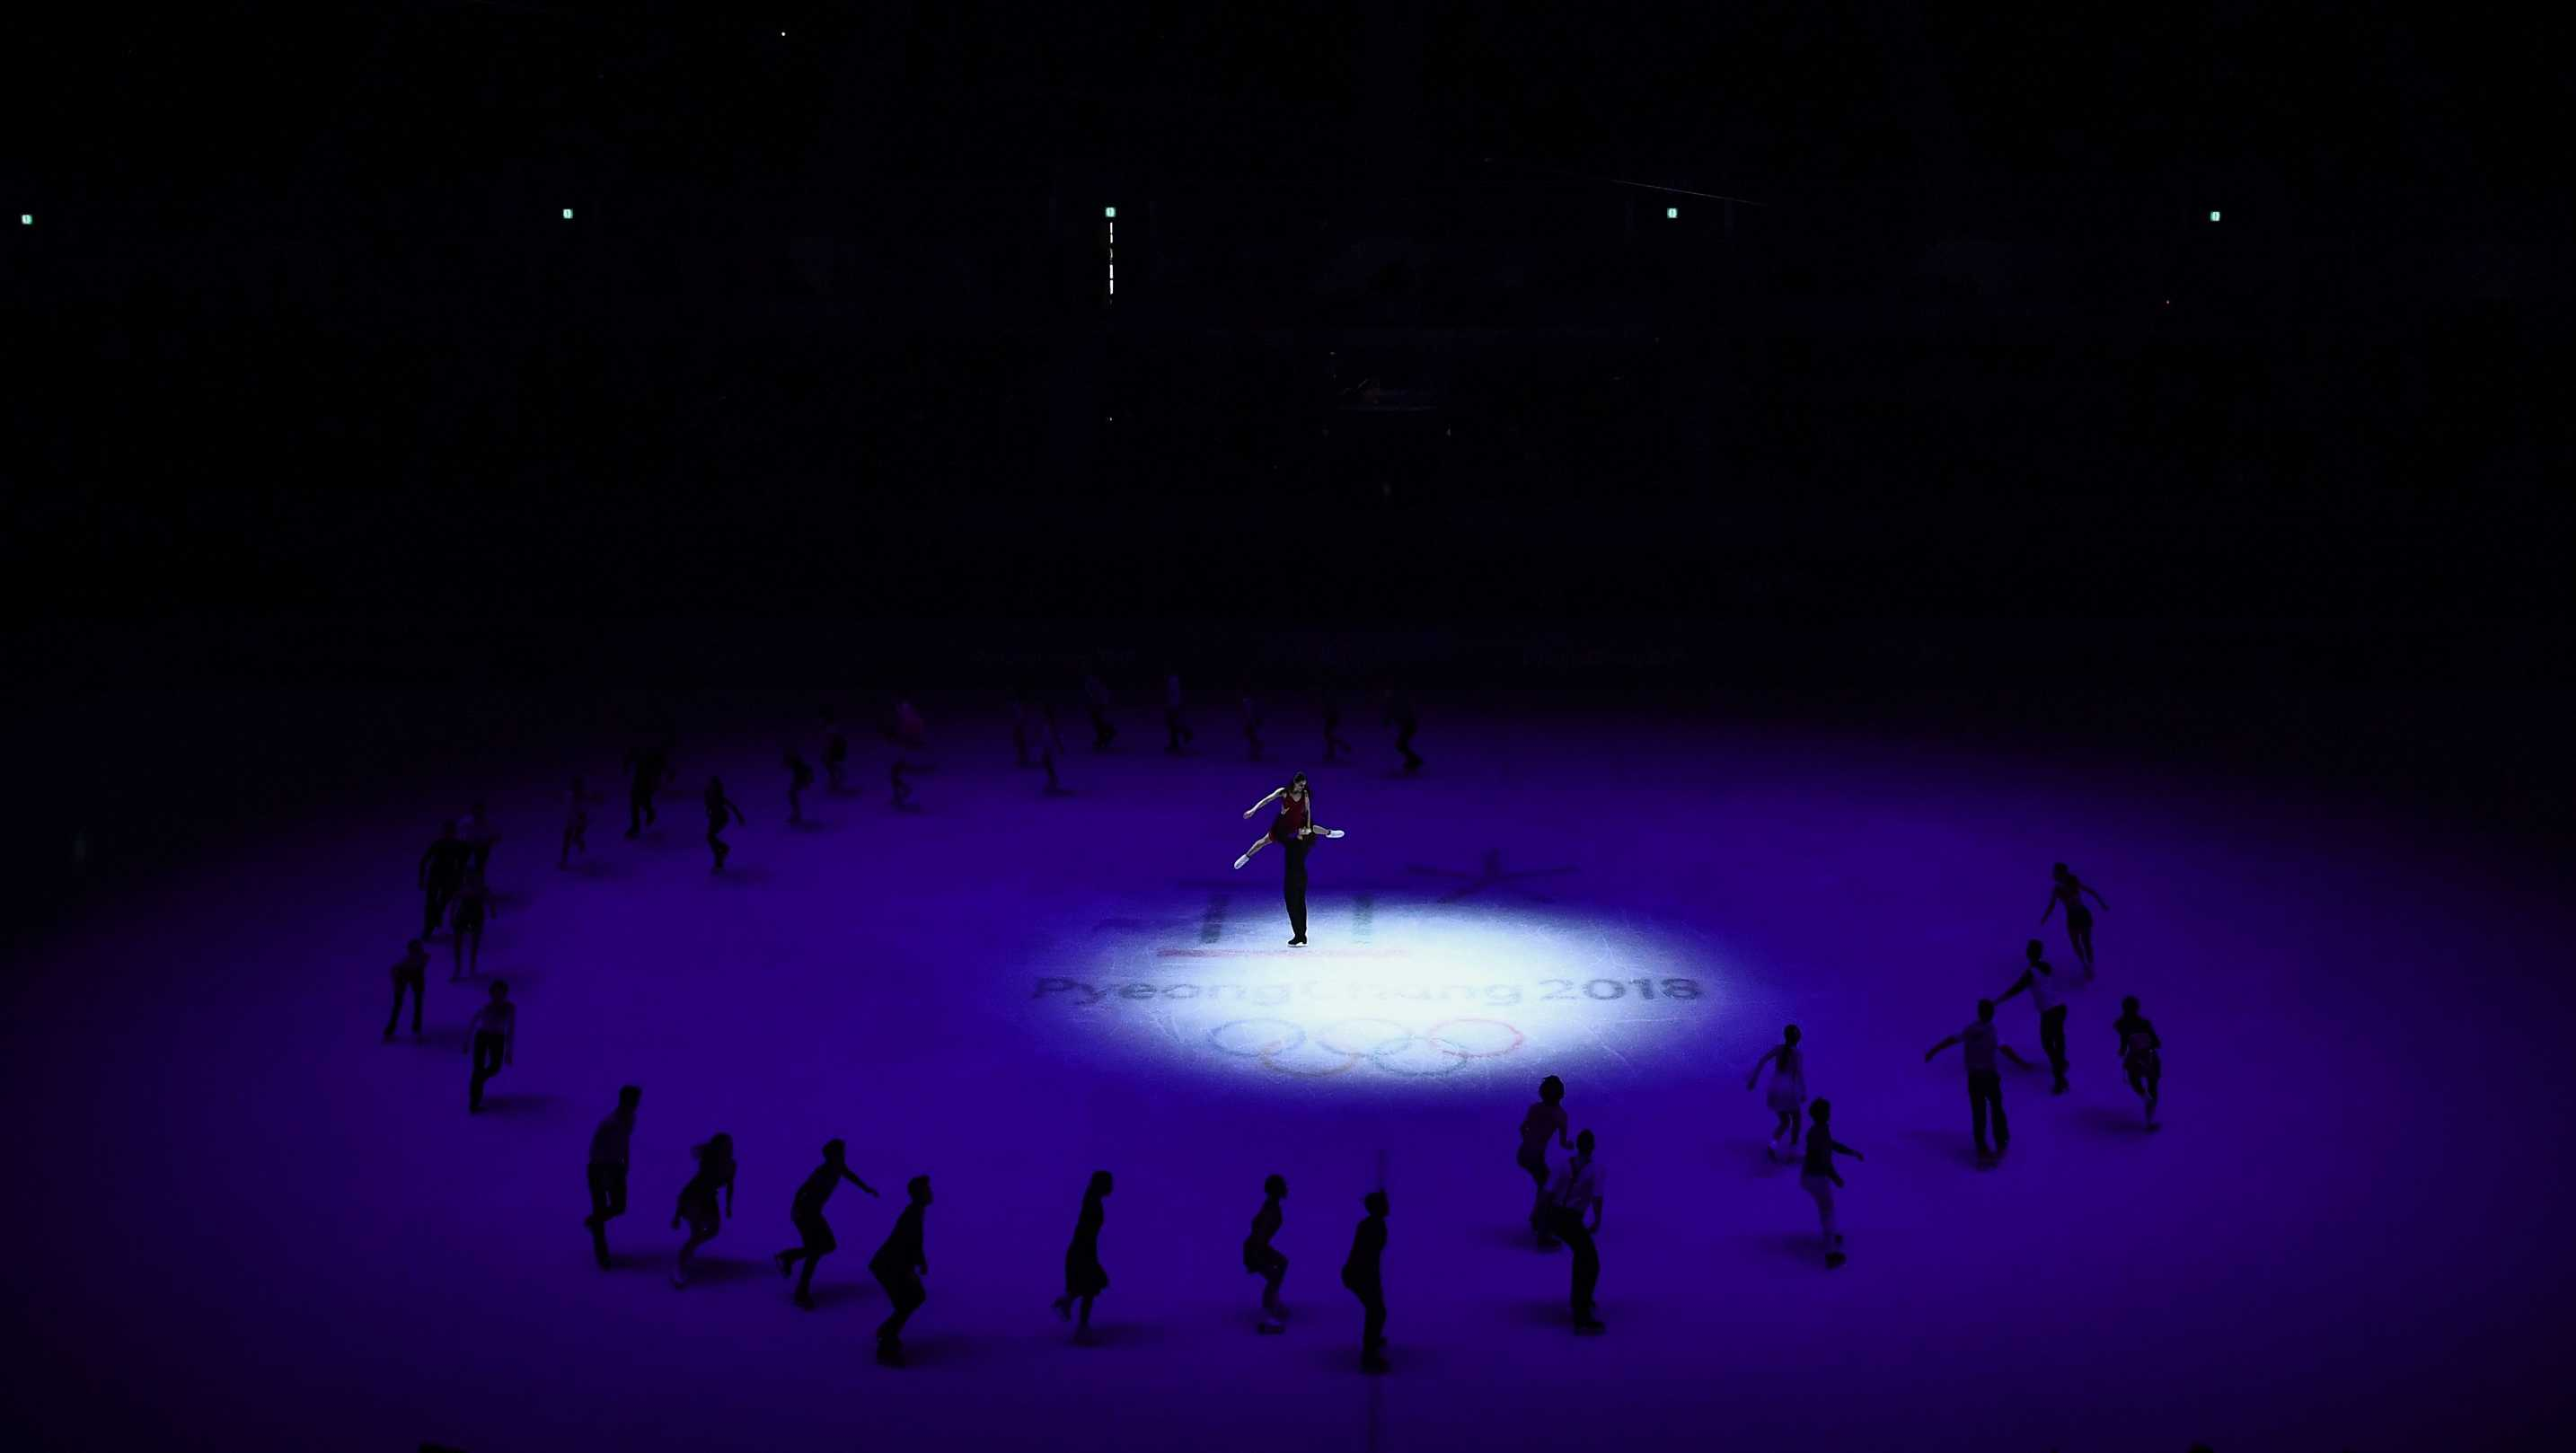 Canada's Tessa Virtue and Canada's Scott Moir perform during the figure skating gala event during the Pyeongchang 2018 Winter Olympic Games at the Gangneung Oval in Gangneung on February 25, 2018.